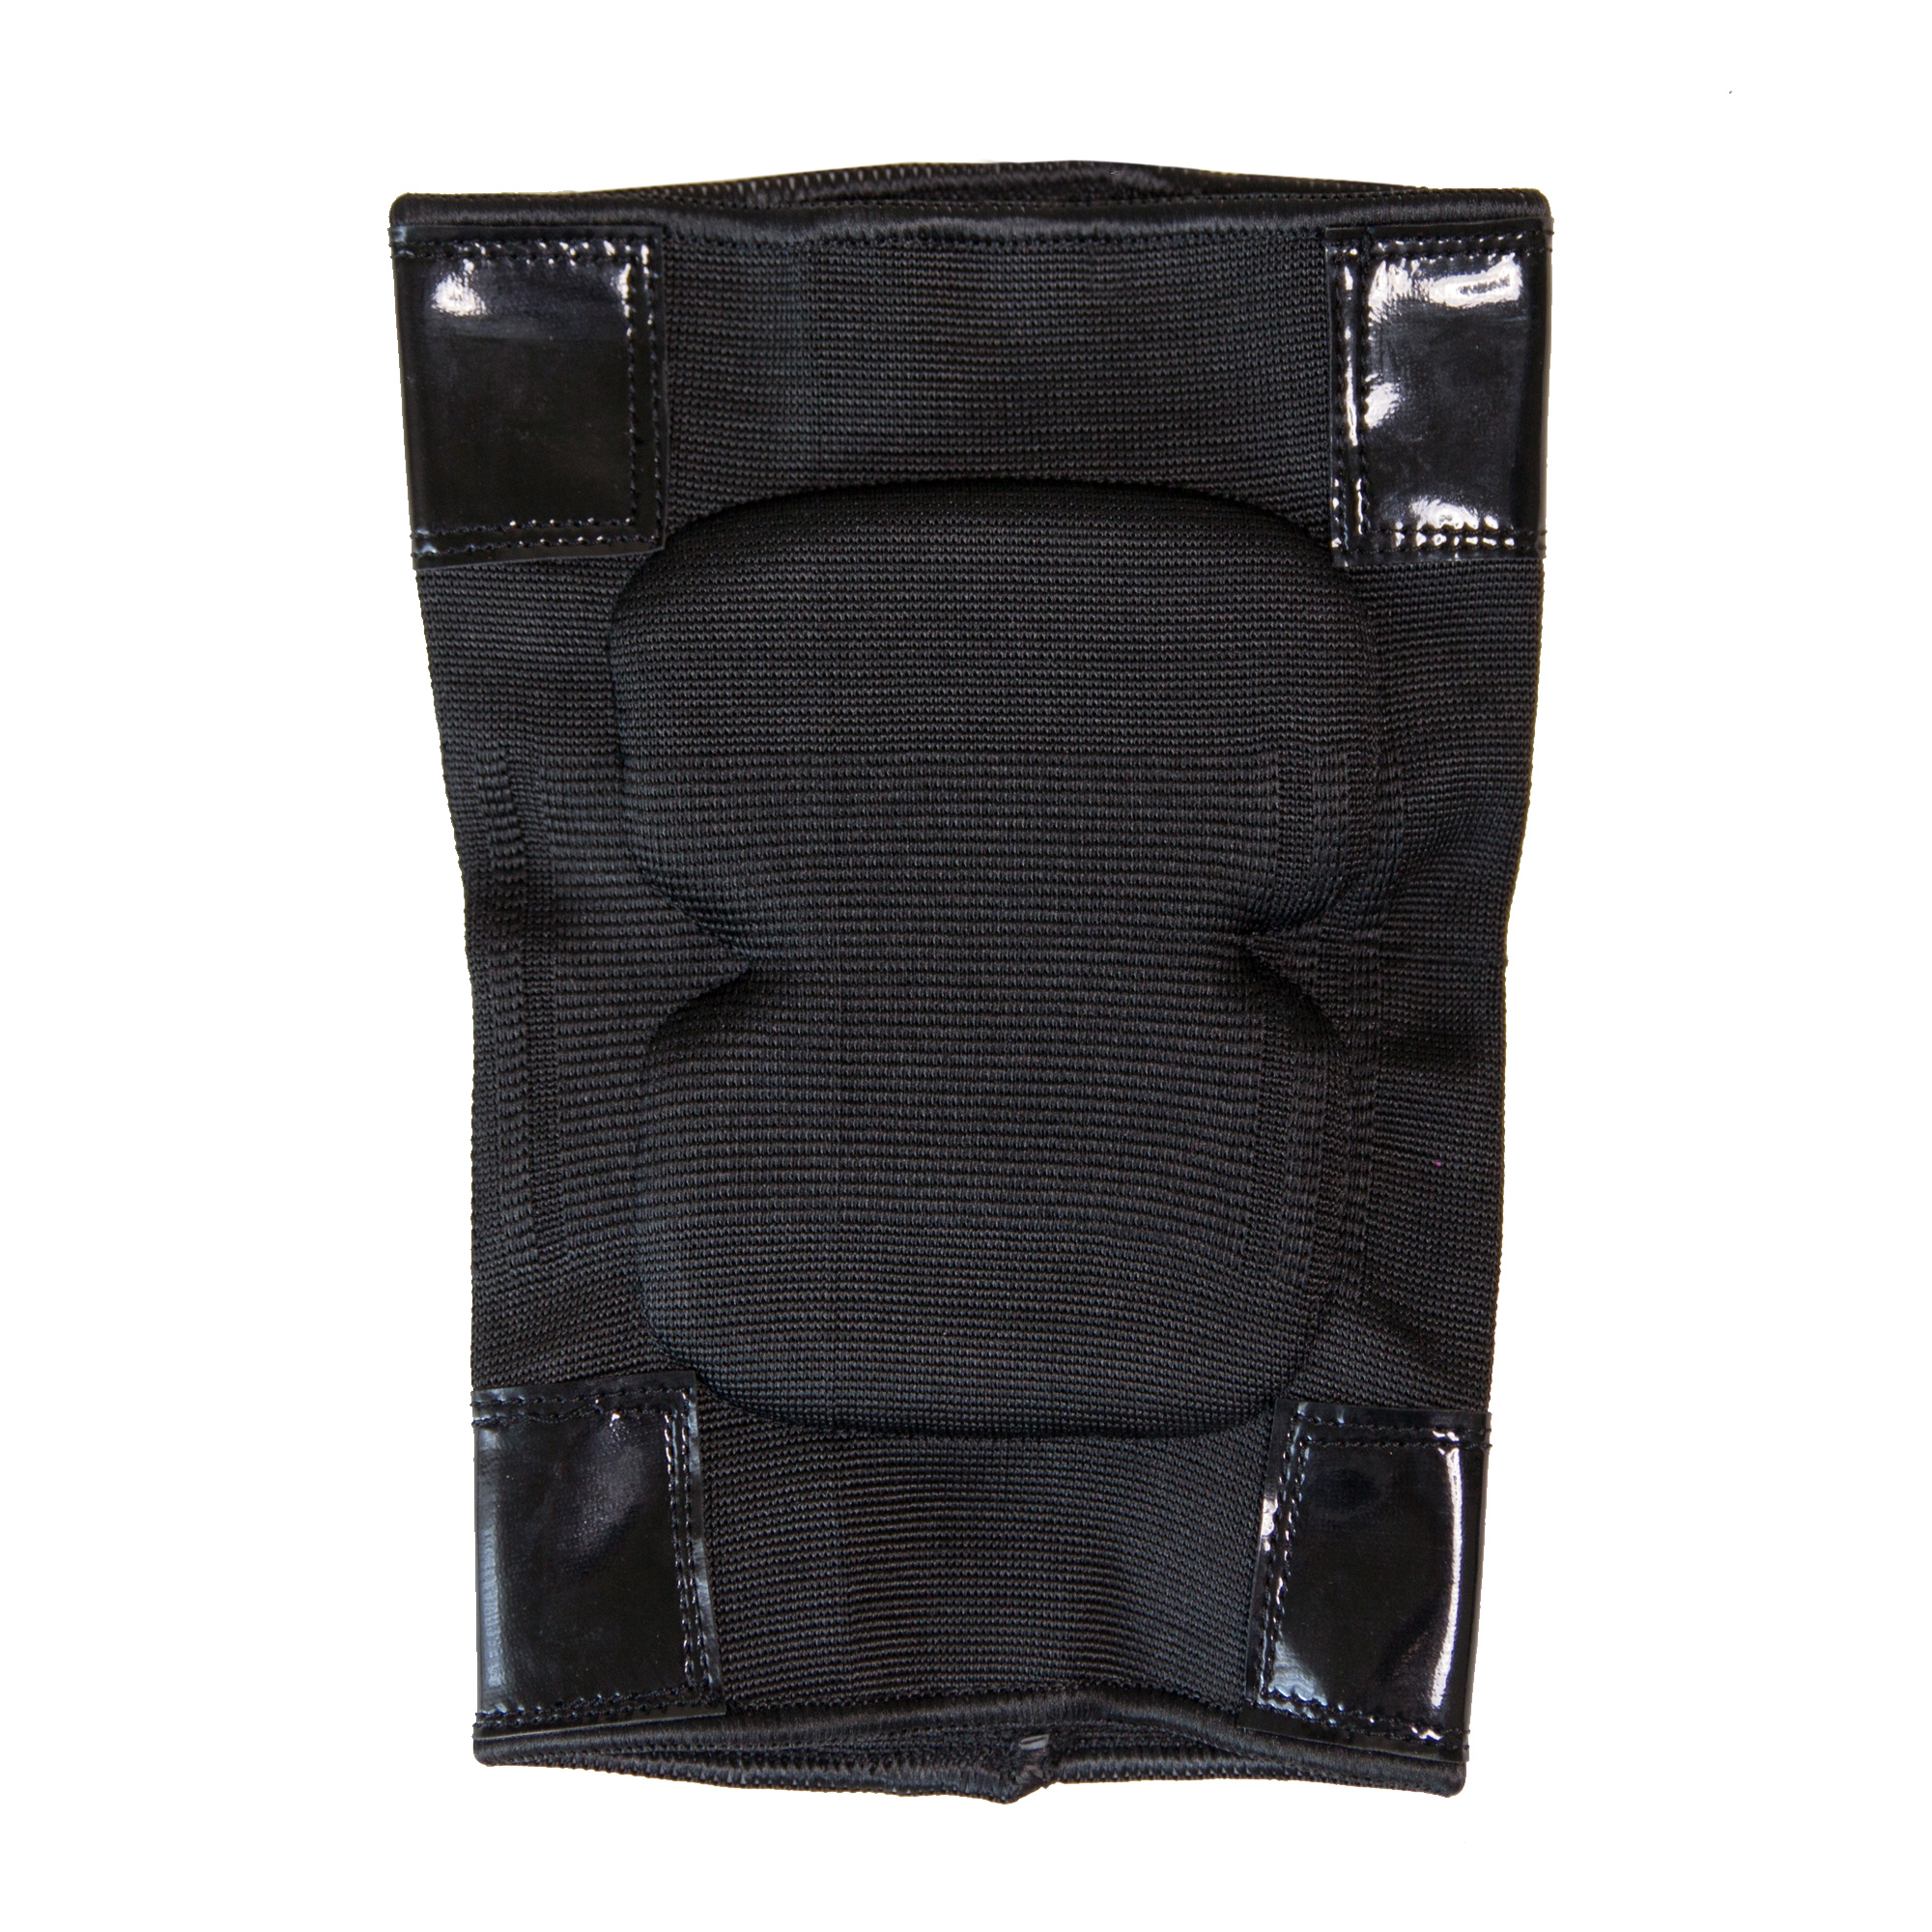 Sticky-Back-Knee-Pads-for-Pole-Dancing-and-floorwork-Front